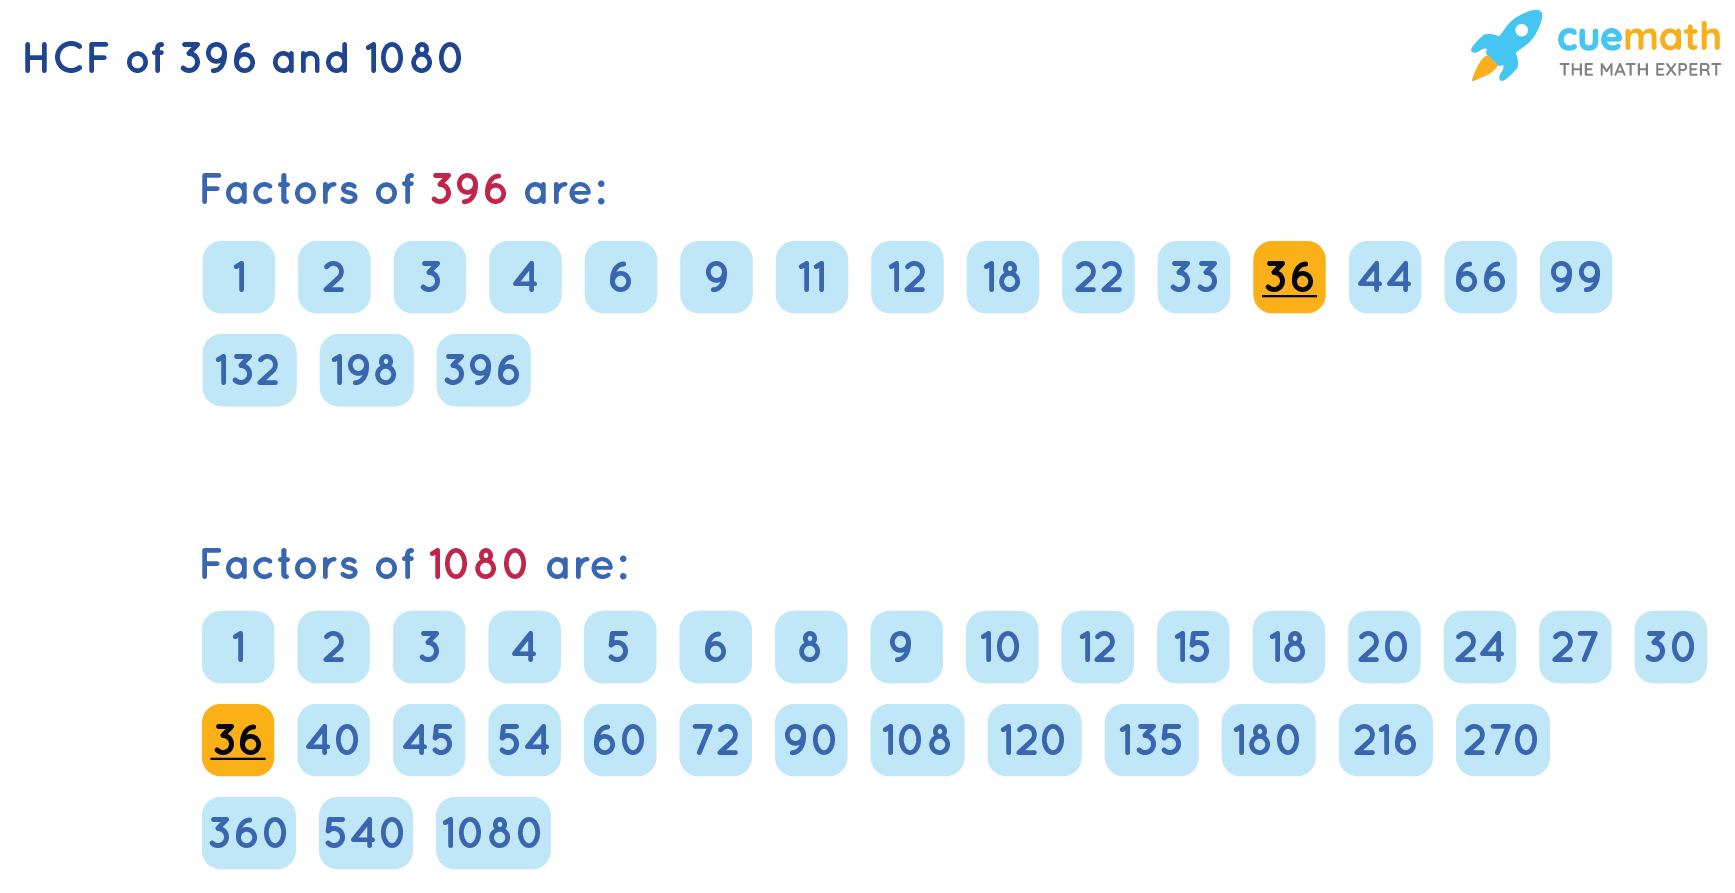 HCF of 396 and 1080 by Listing the Common Factors